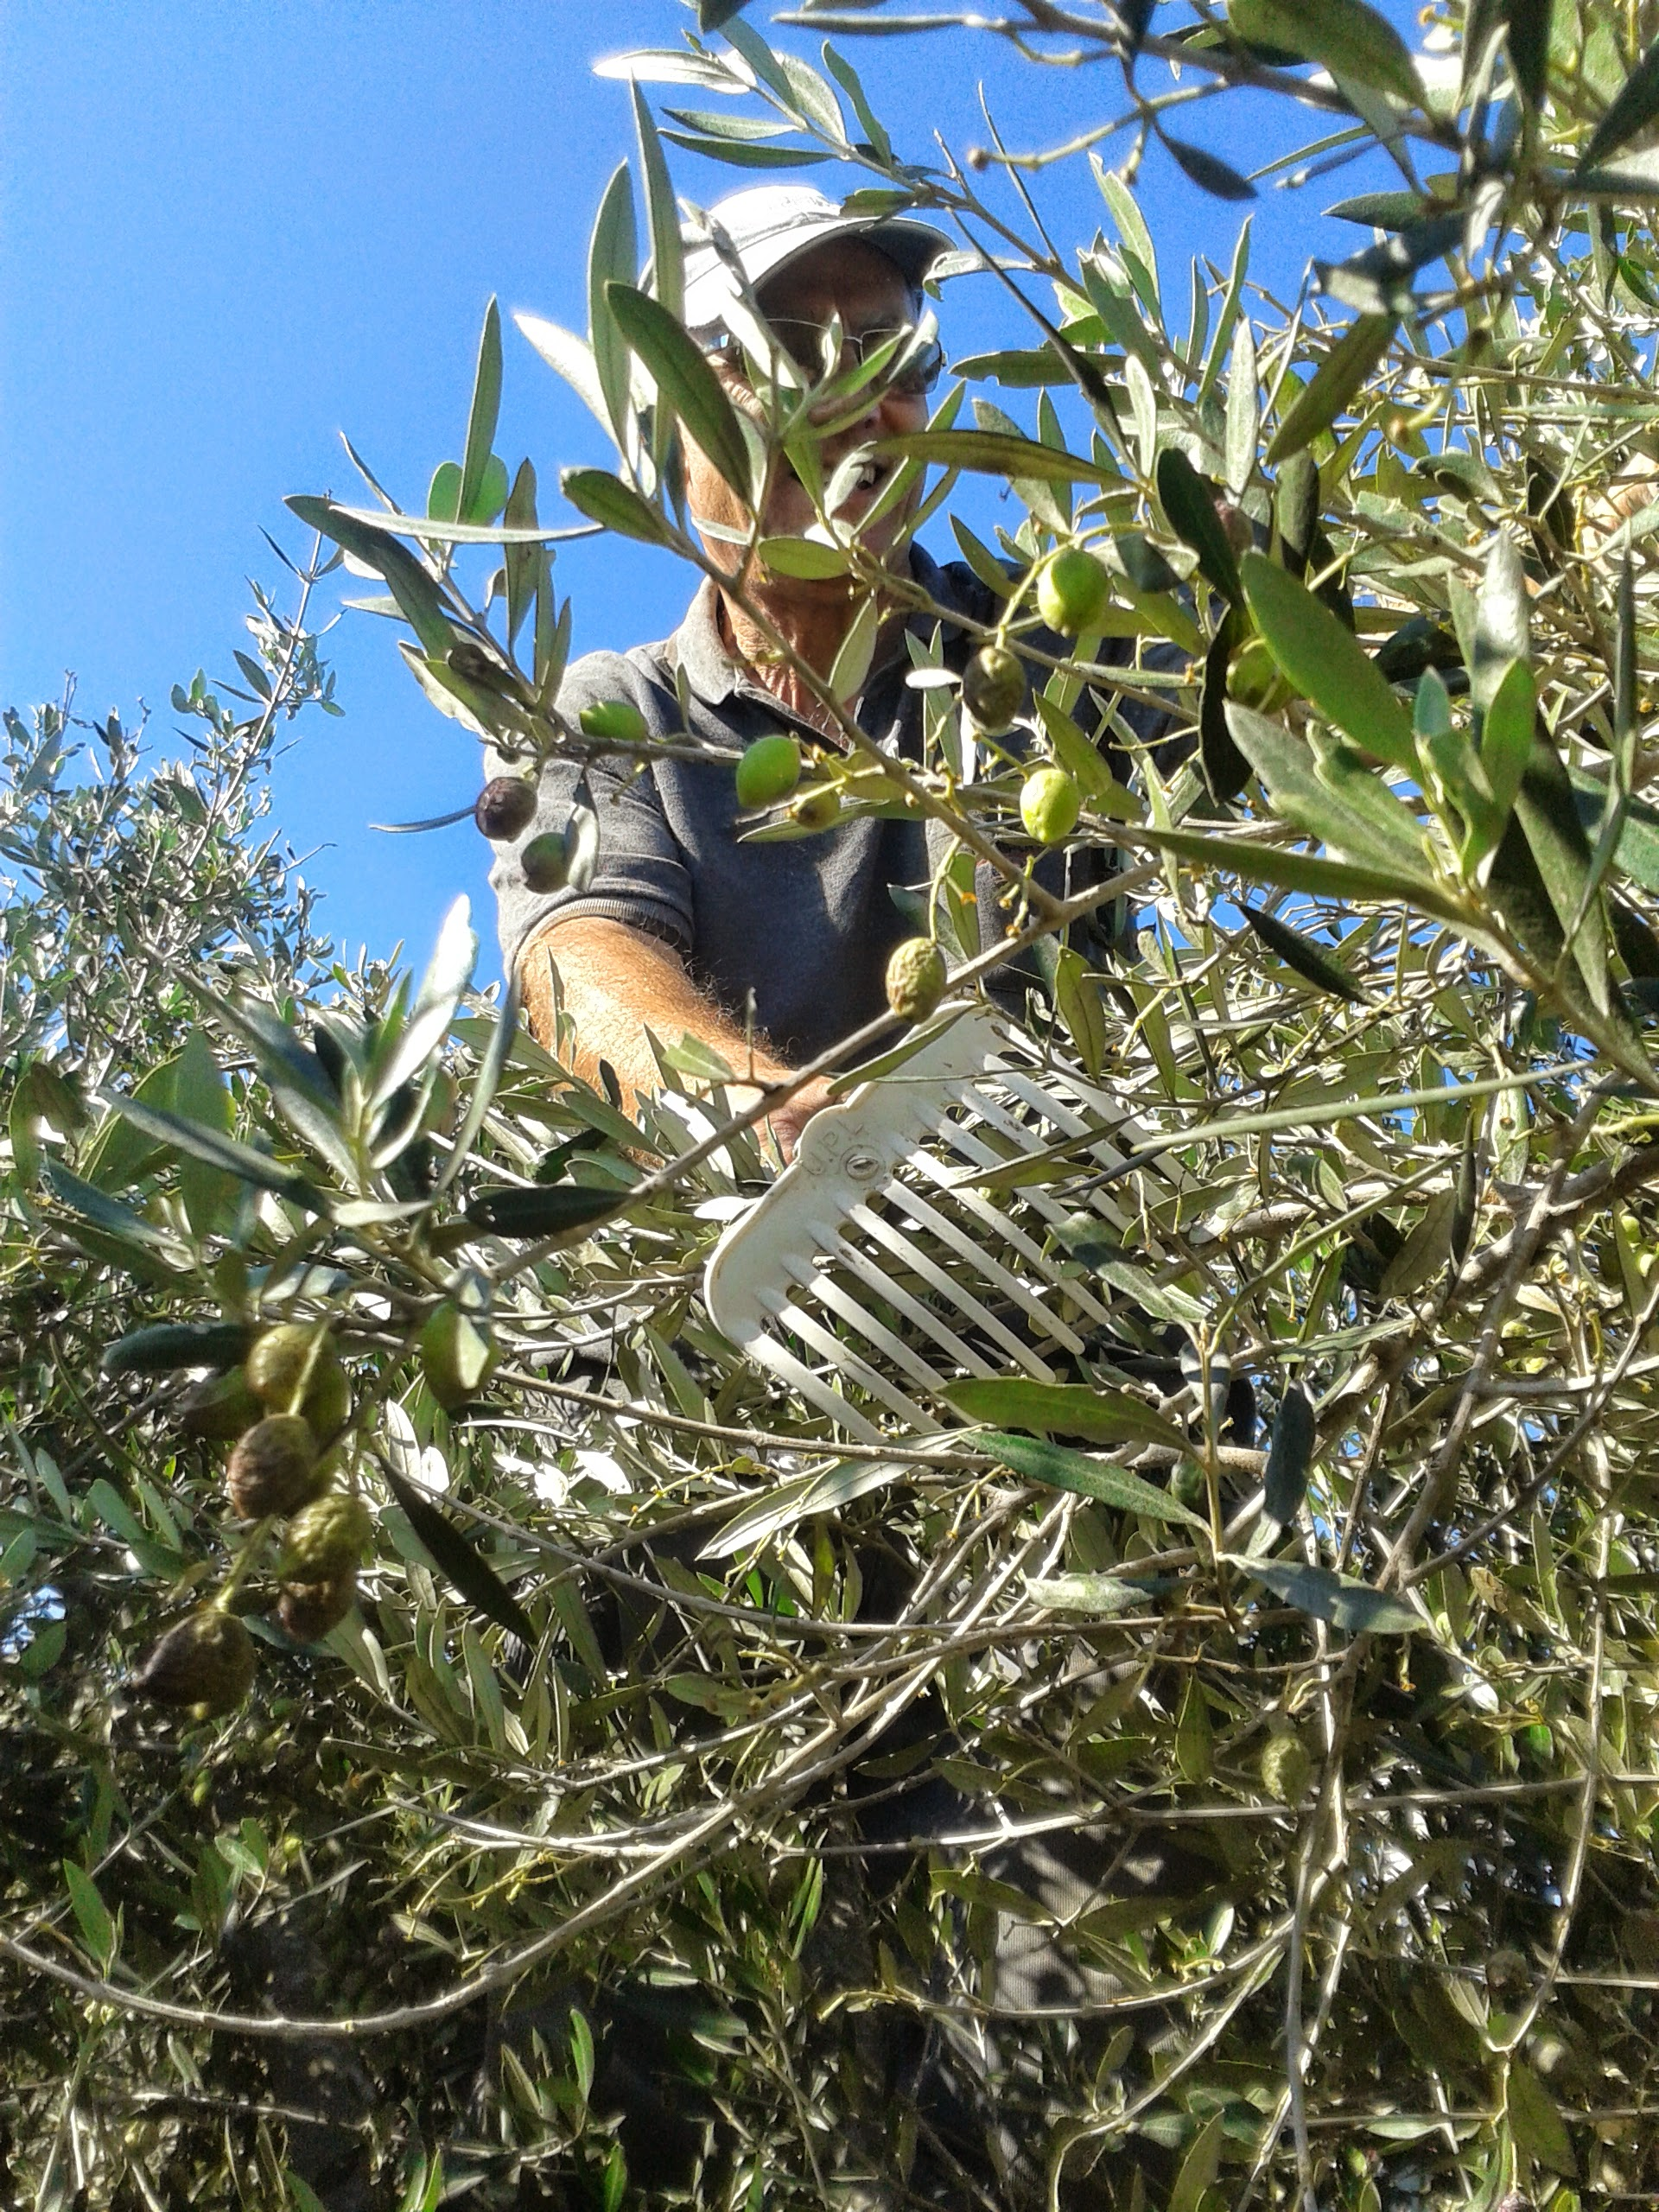 Harvesting olives with olive combs